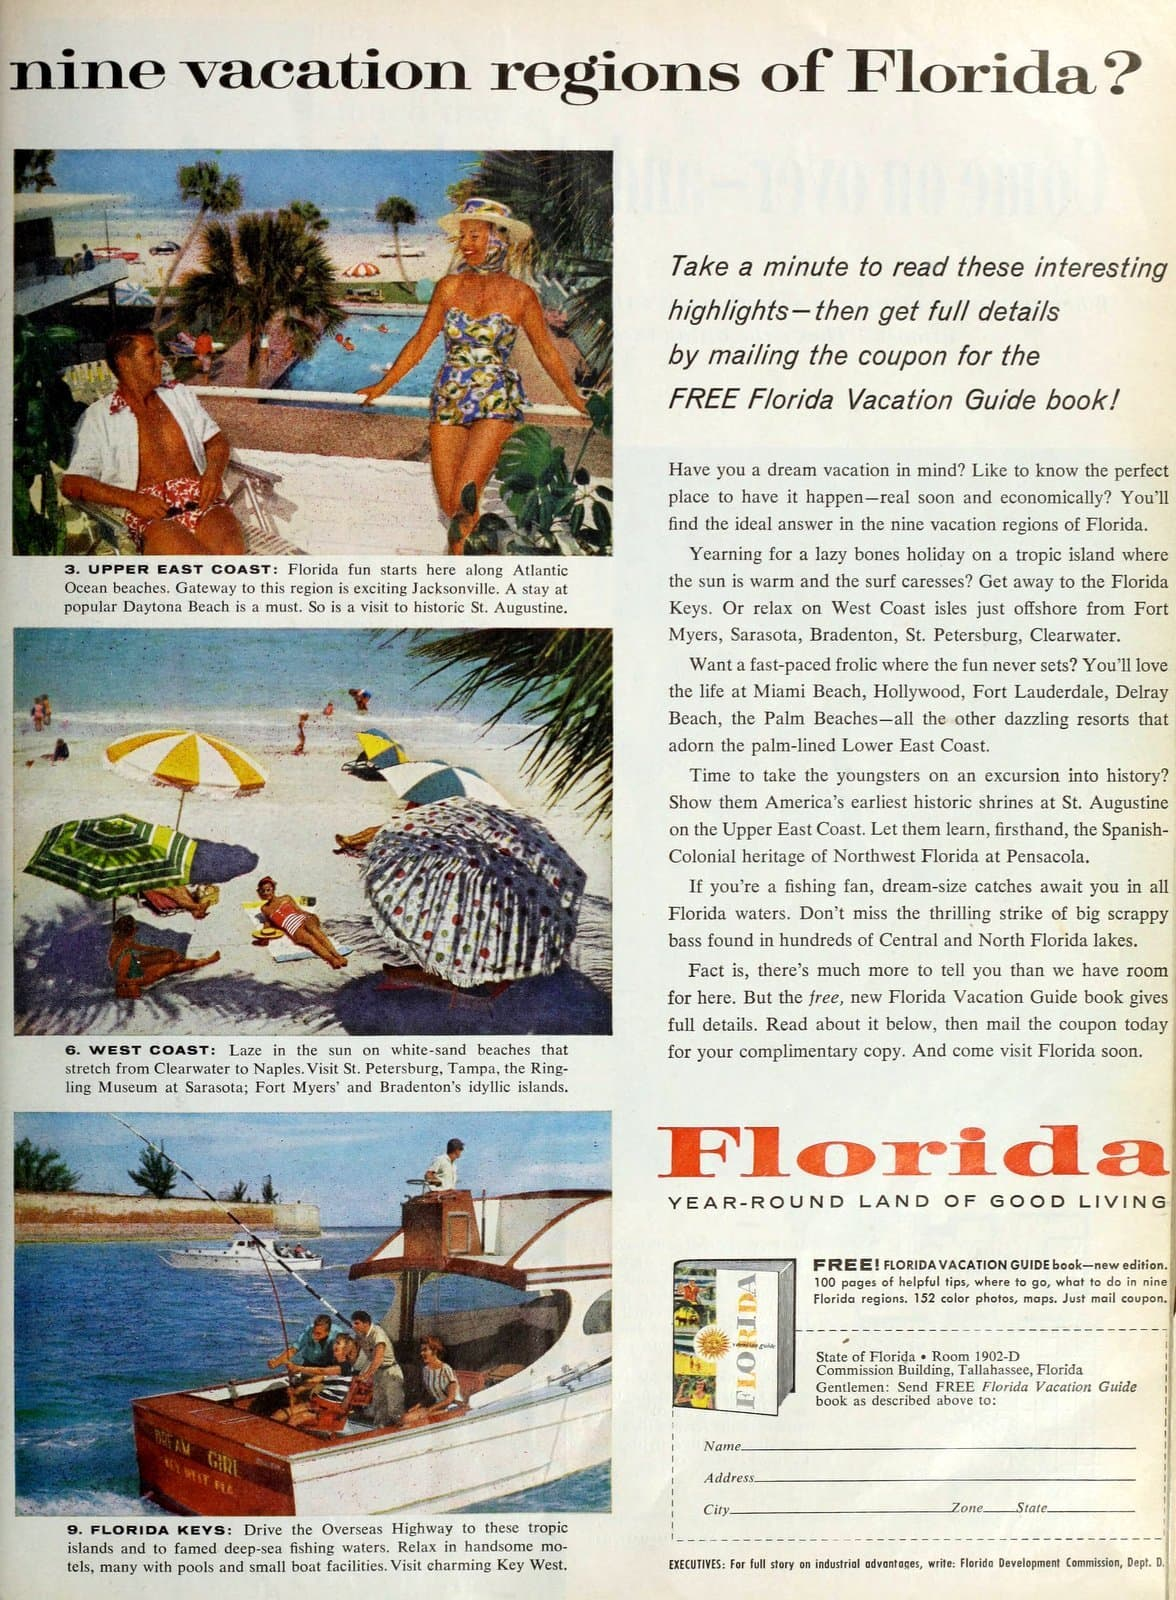 The 9 vacation regions of Florida in 1960 (1)